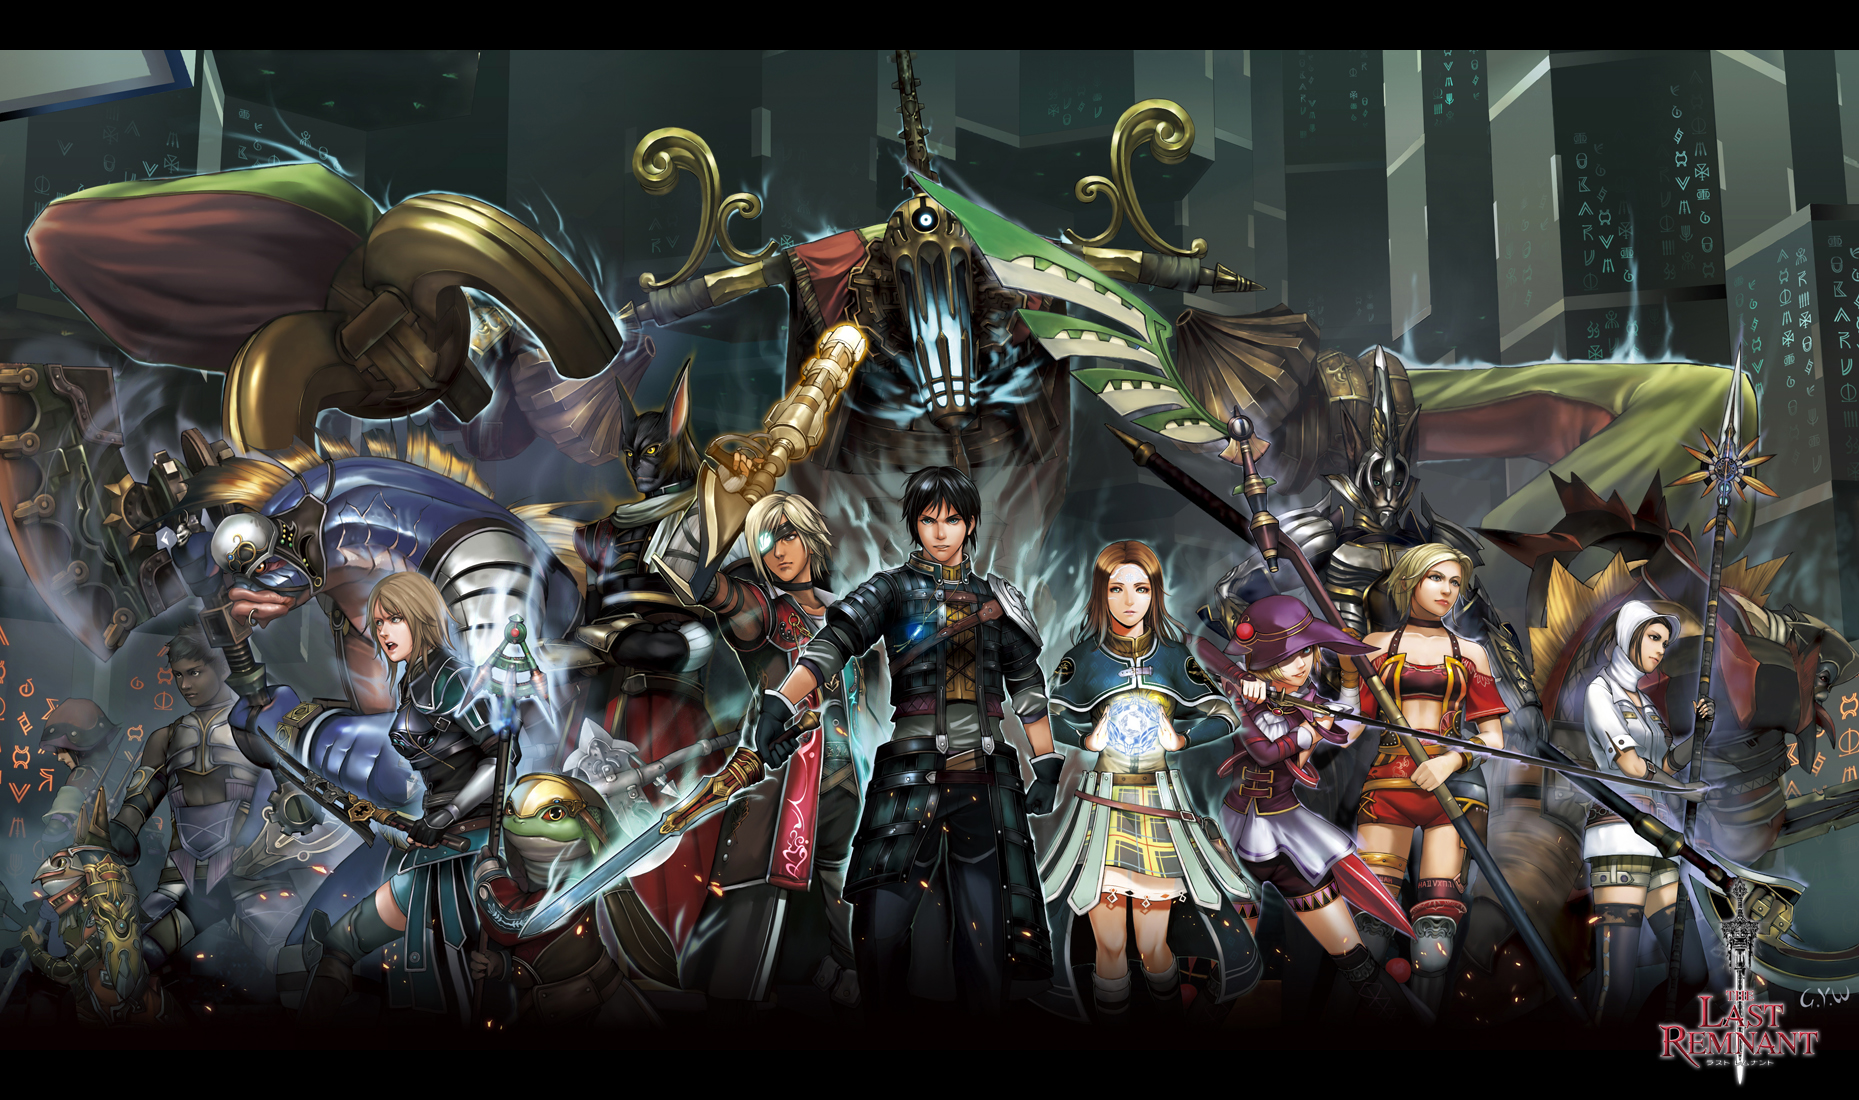 A group of people and creatures holding swords and other weapons, with two large robot creatures behind them in front of a city.